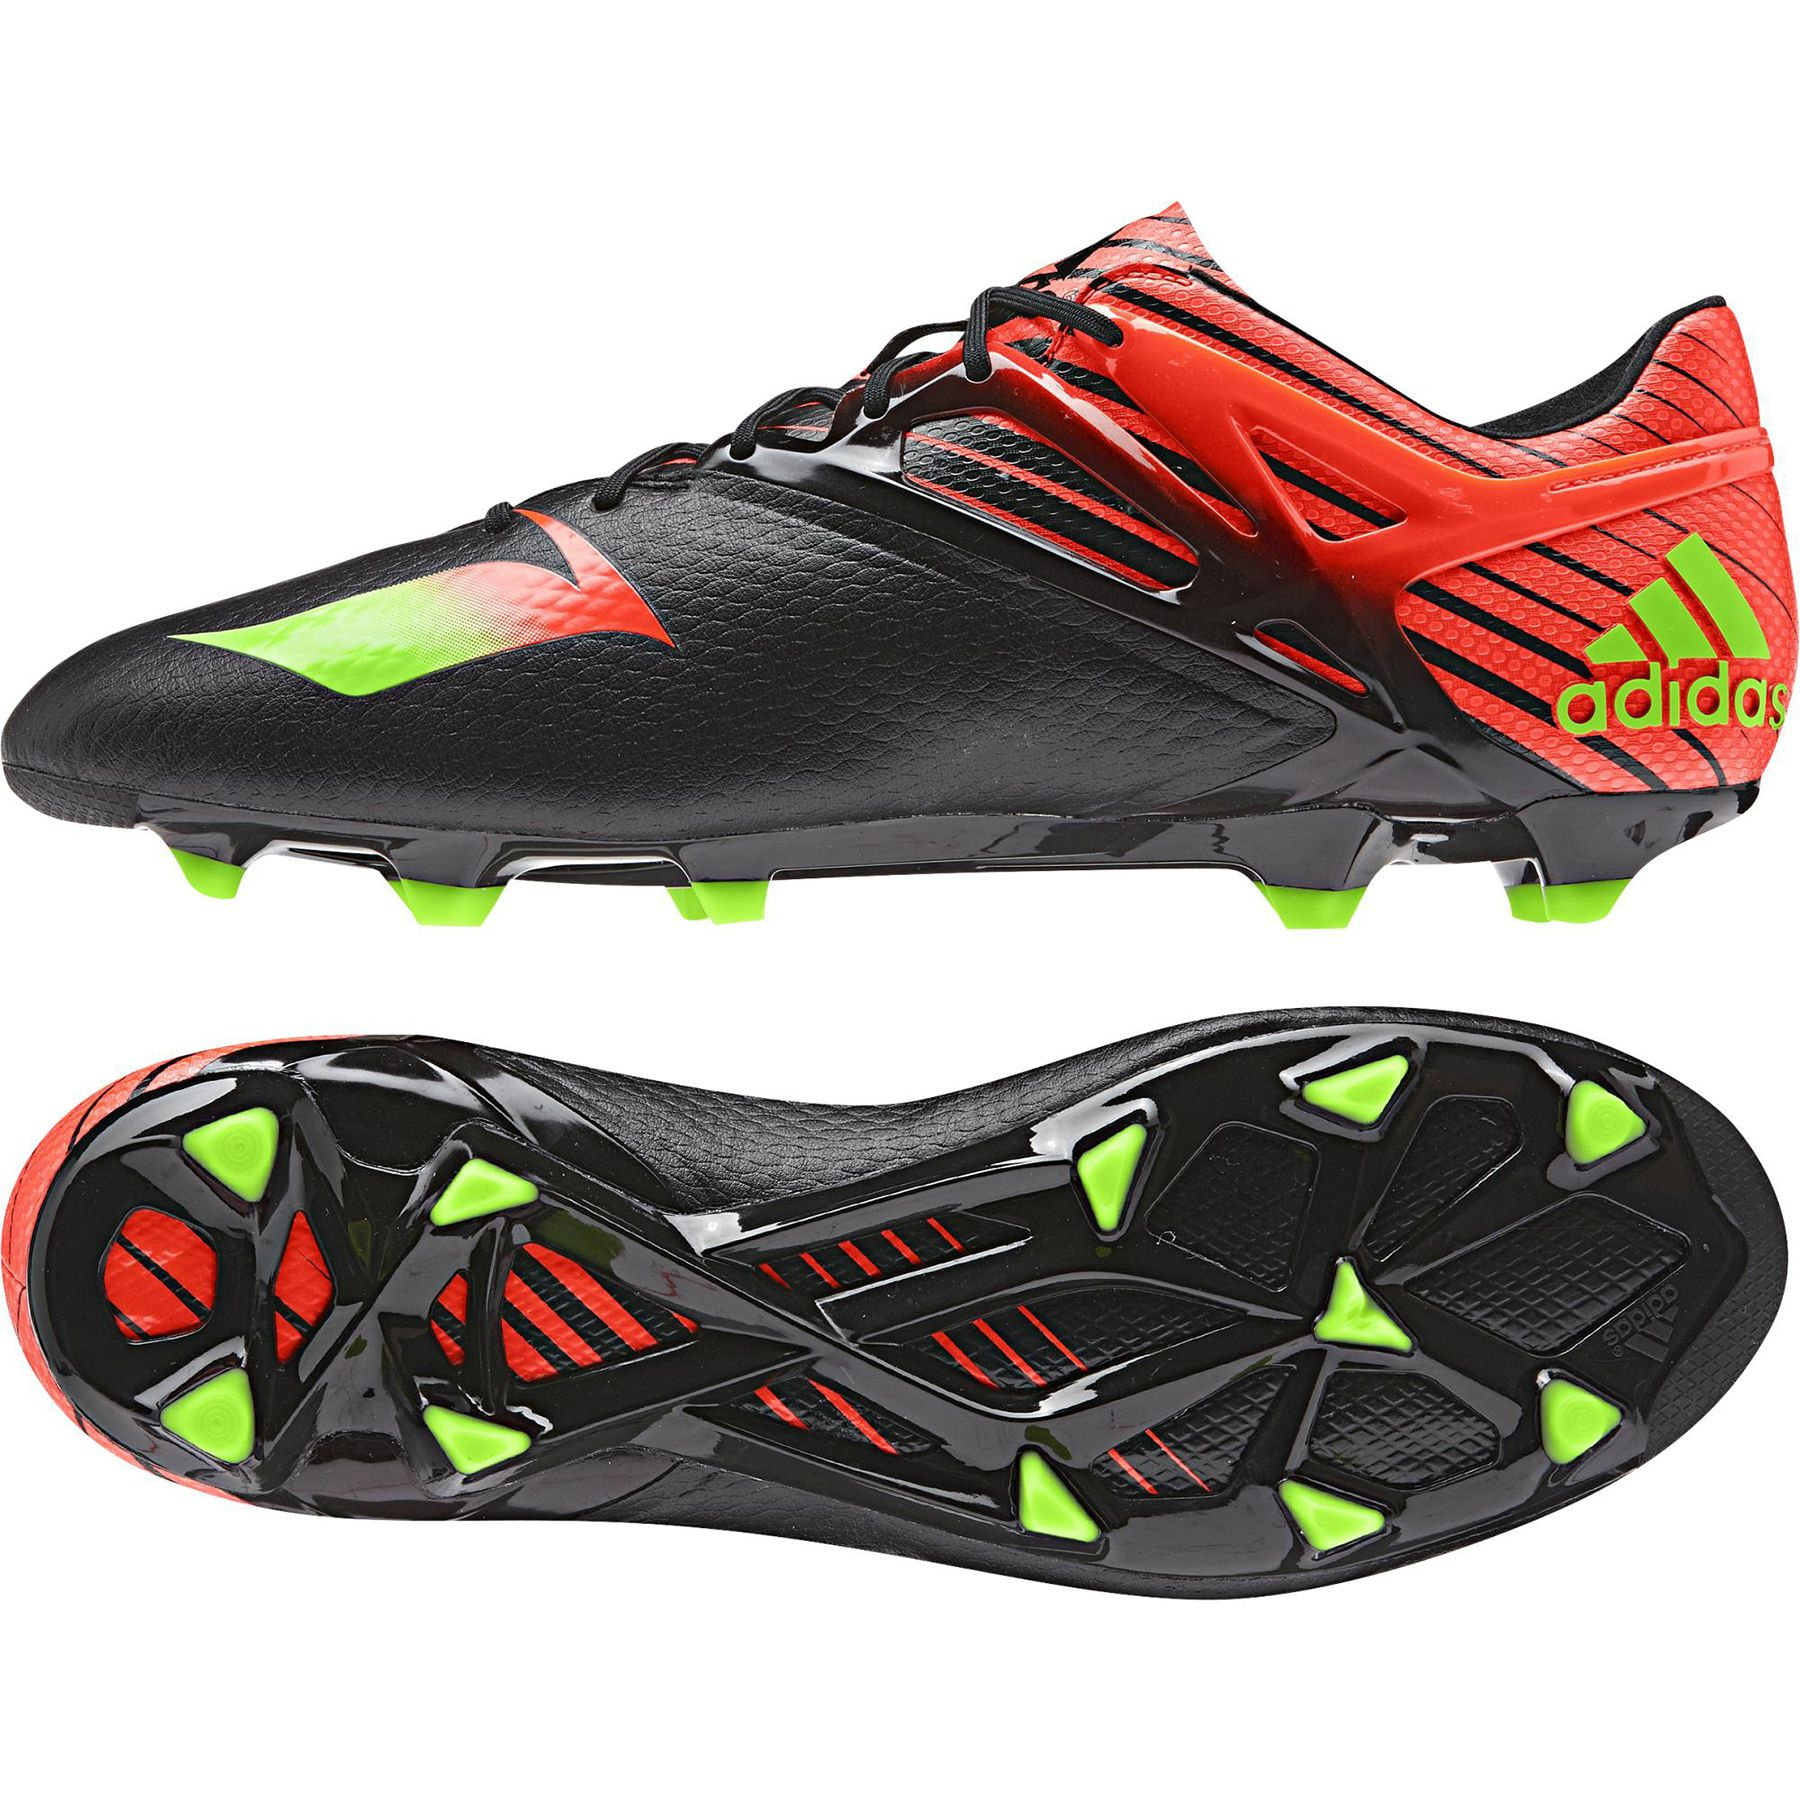 official photos ad623 bfb22 Adidas Messi 15.1 Firm Ground Football Boots - Black - Available at  Kitbag.com.